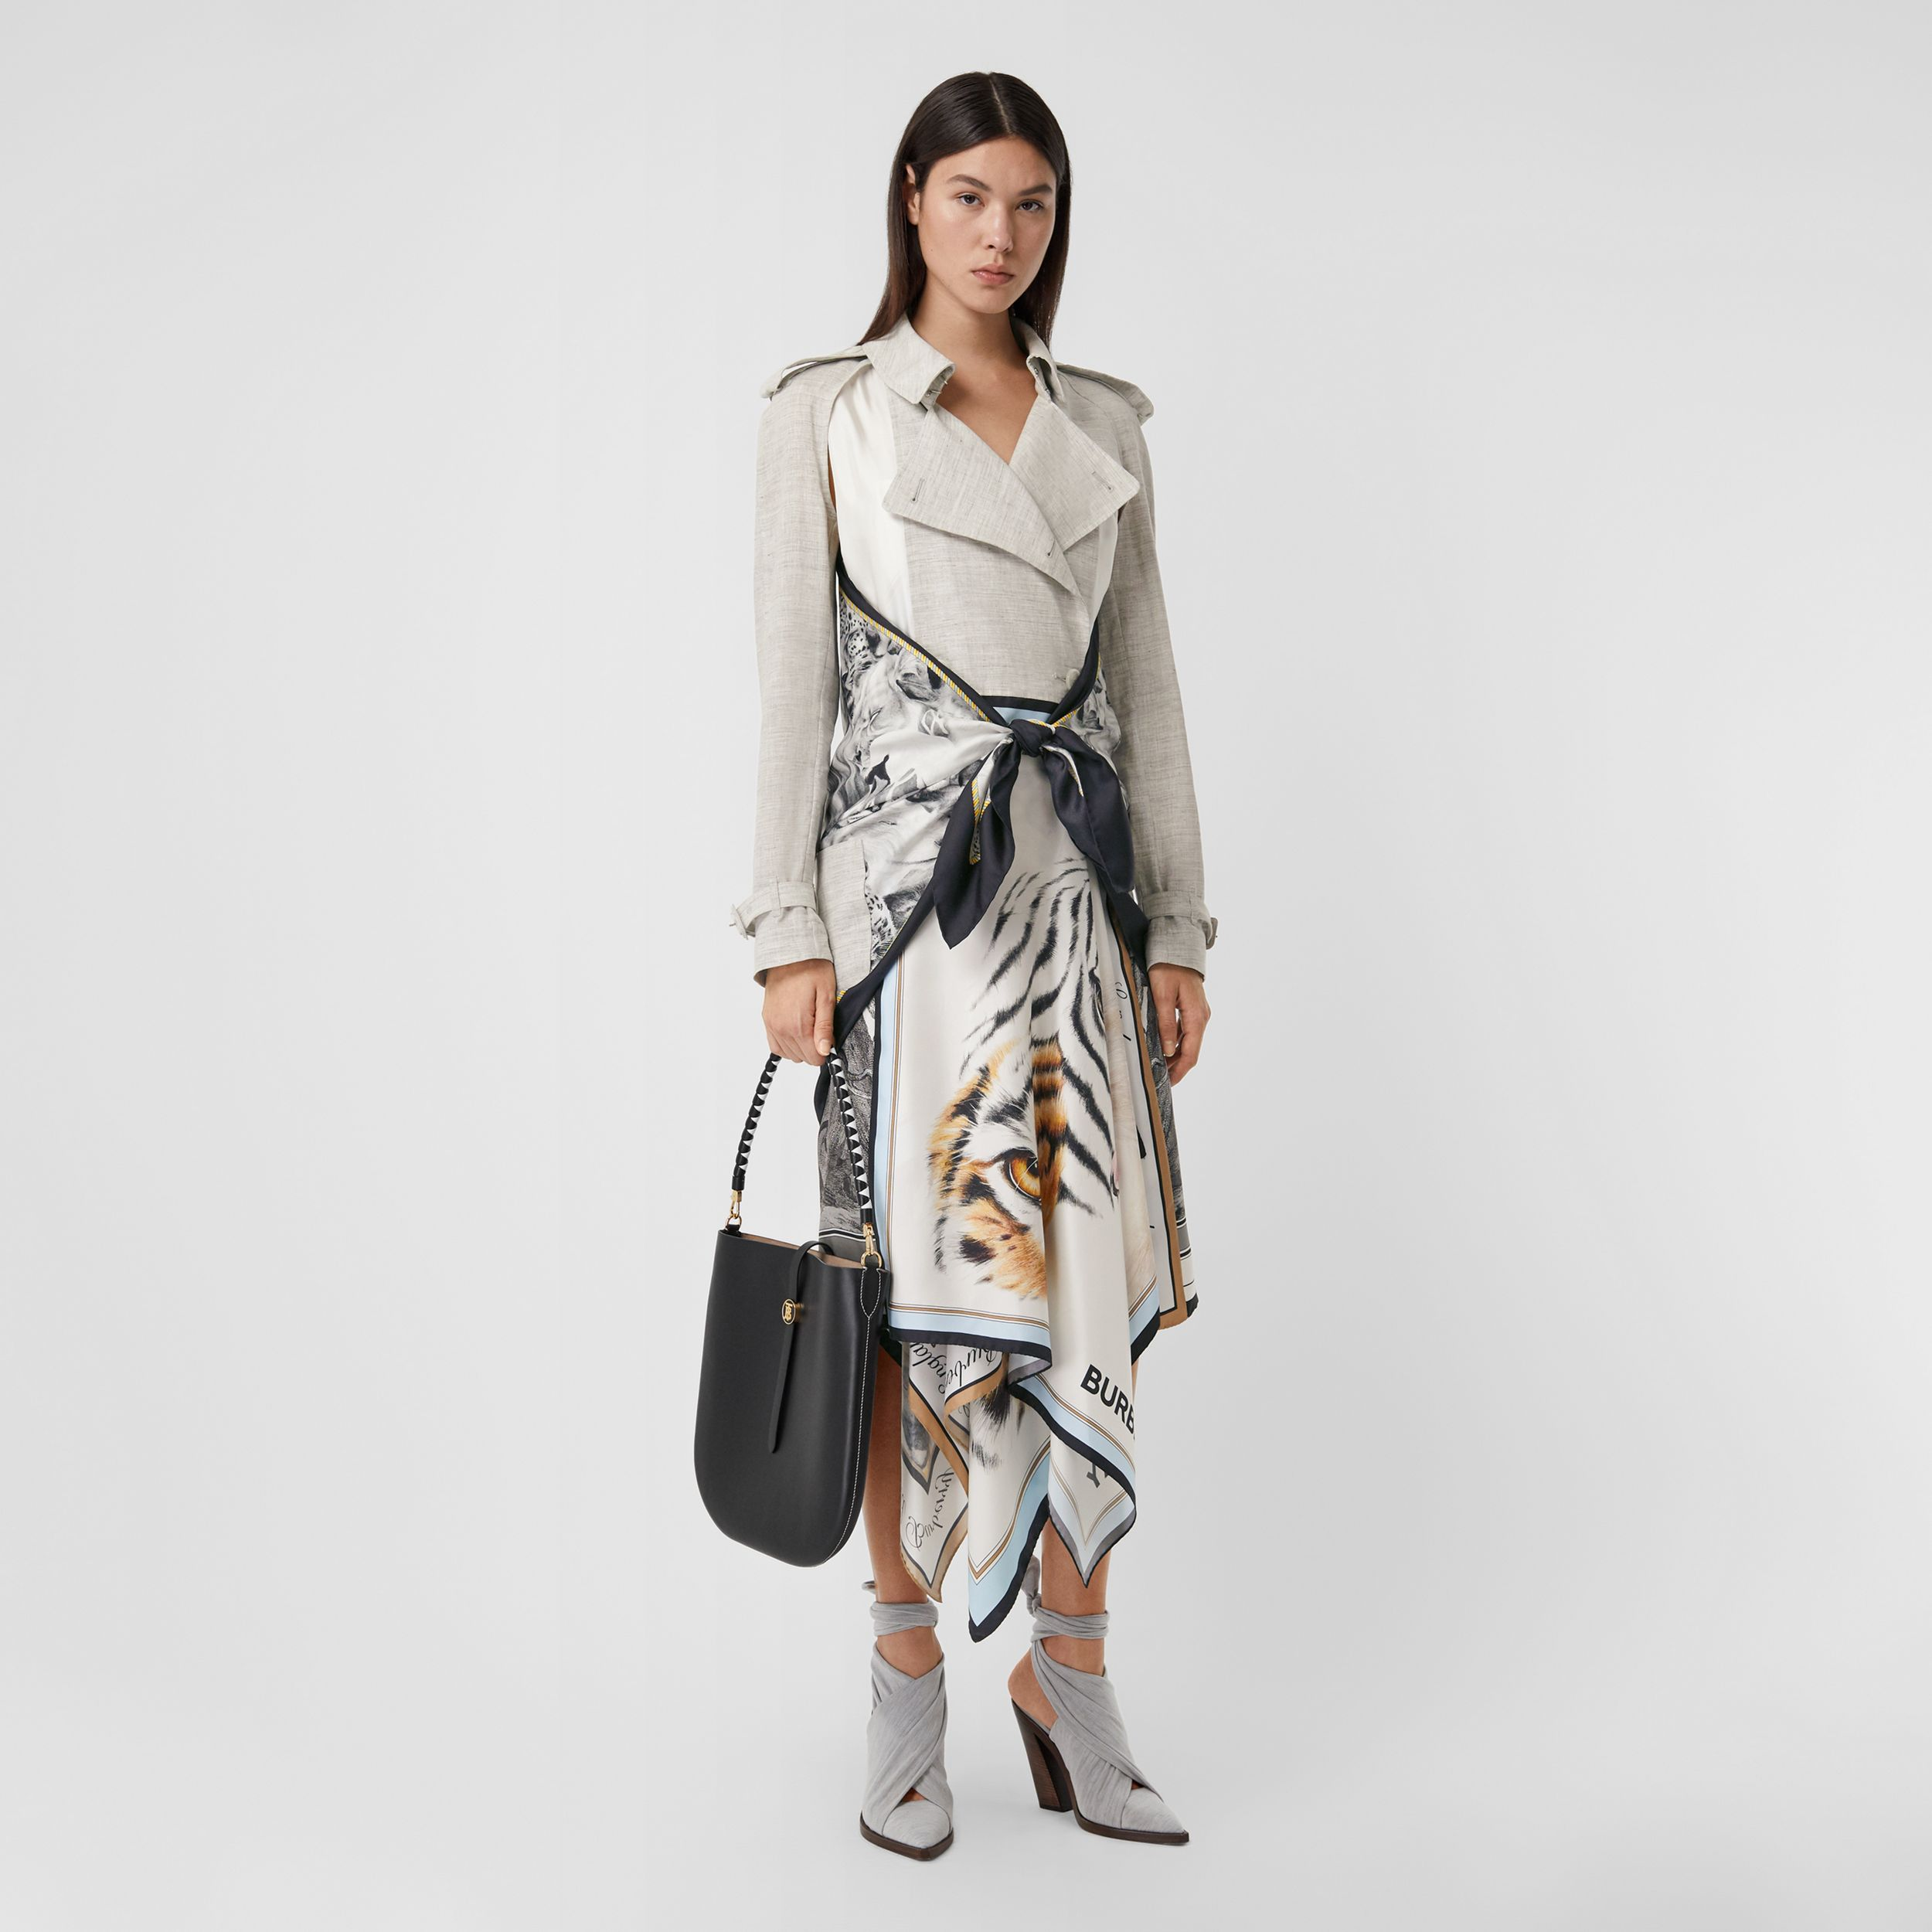 Animalia Print Linen Trench Dress in Grey Melange - Women | Burberry Hong Kong S.A.R. - 1